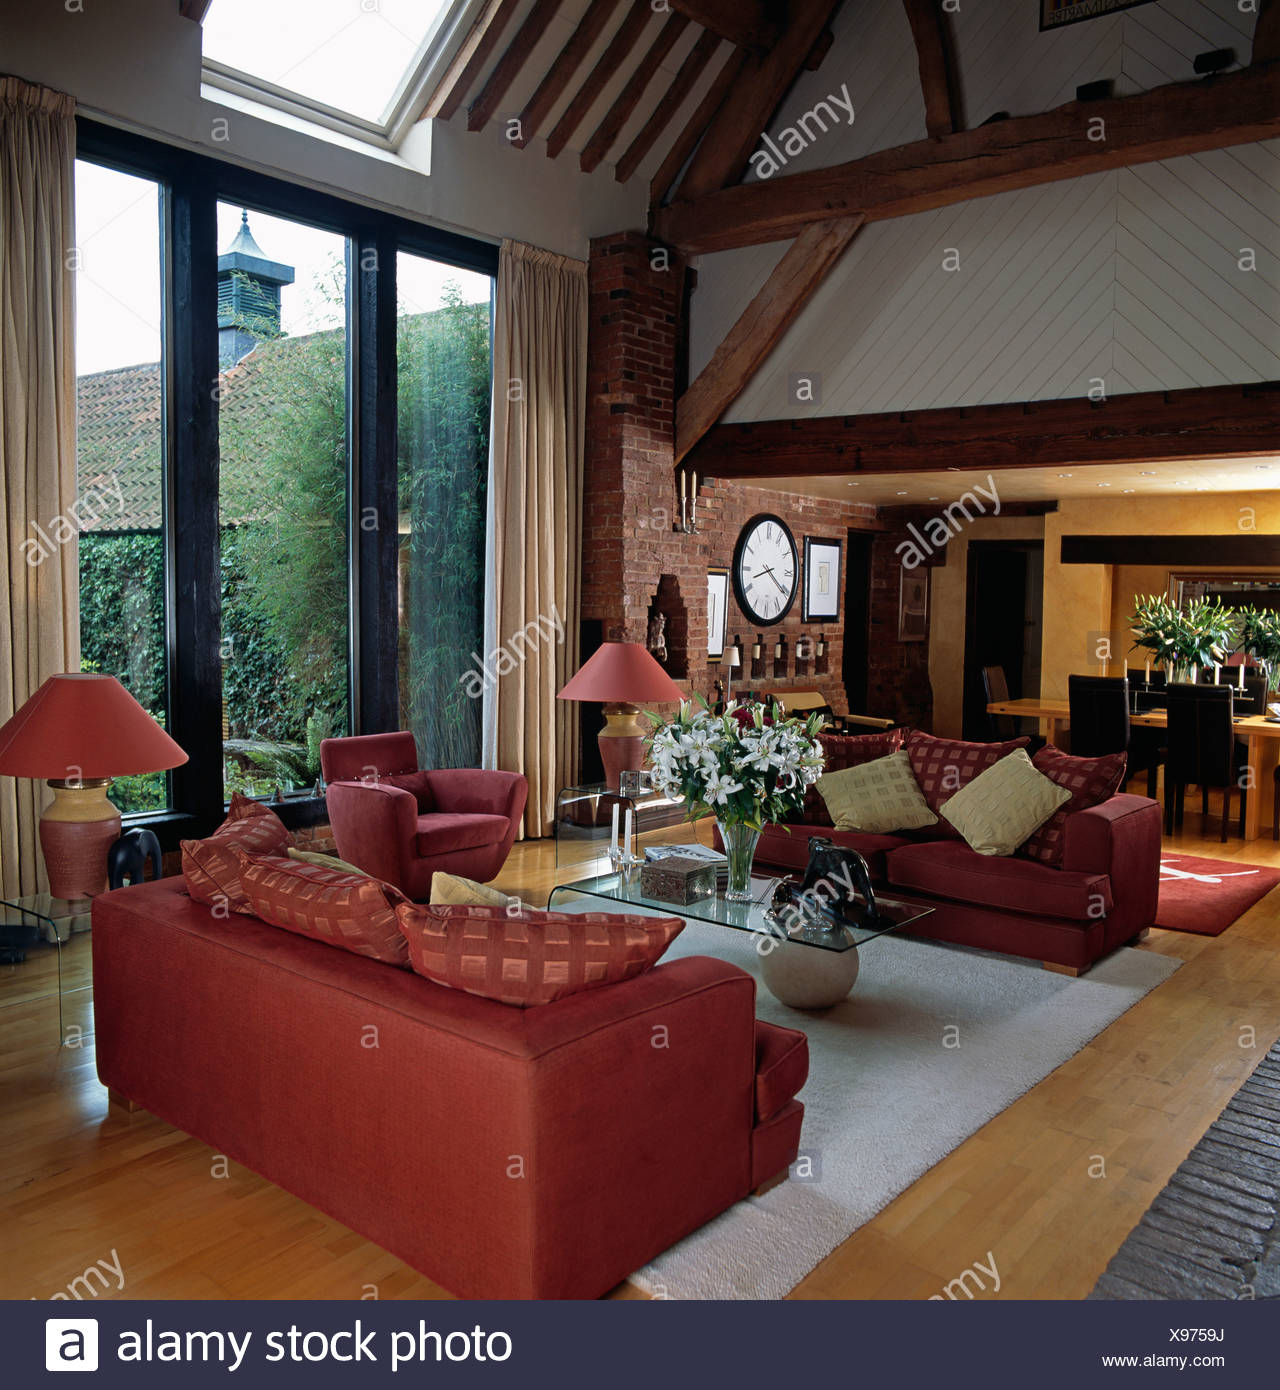 Red sofas and white rug in front of glass doors in living ...